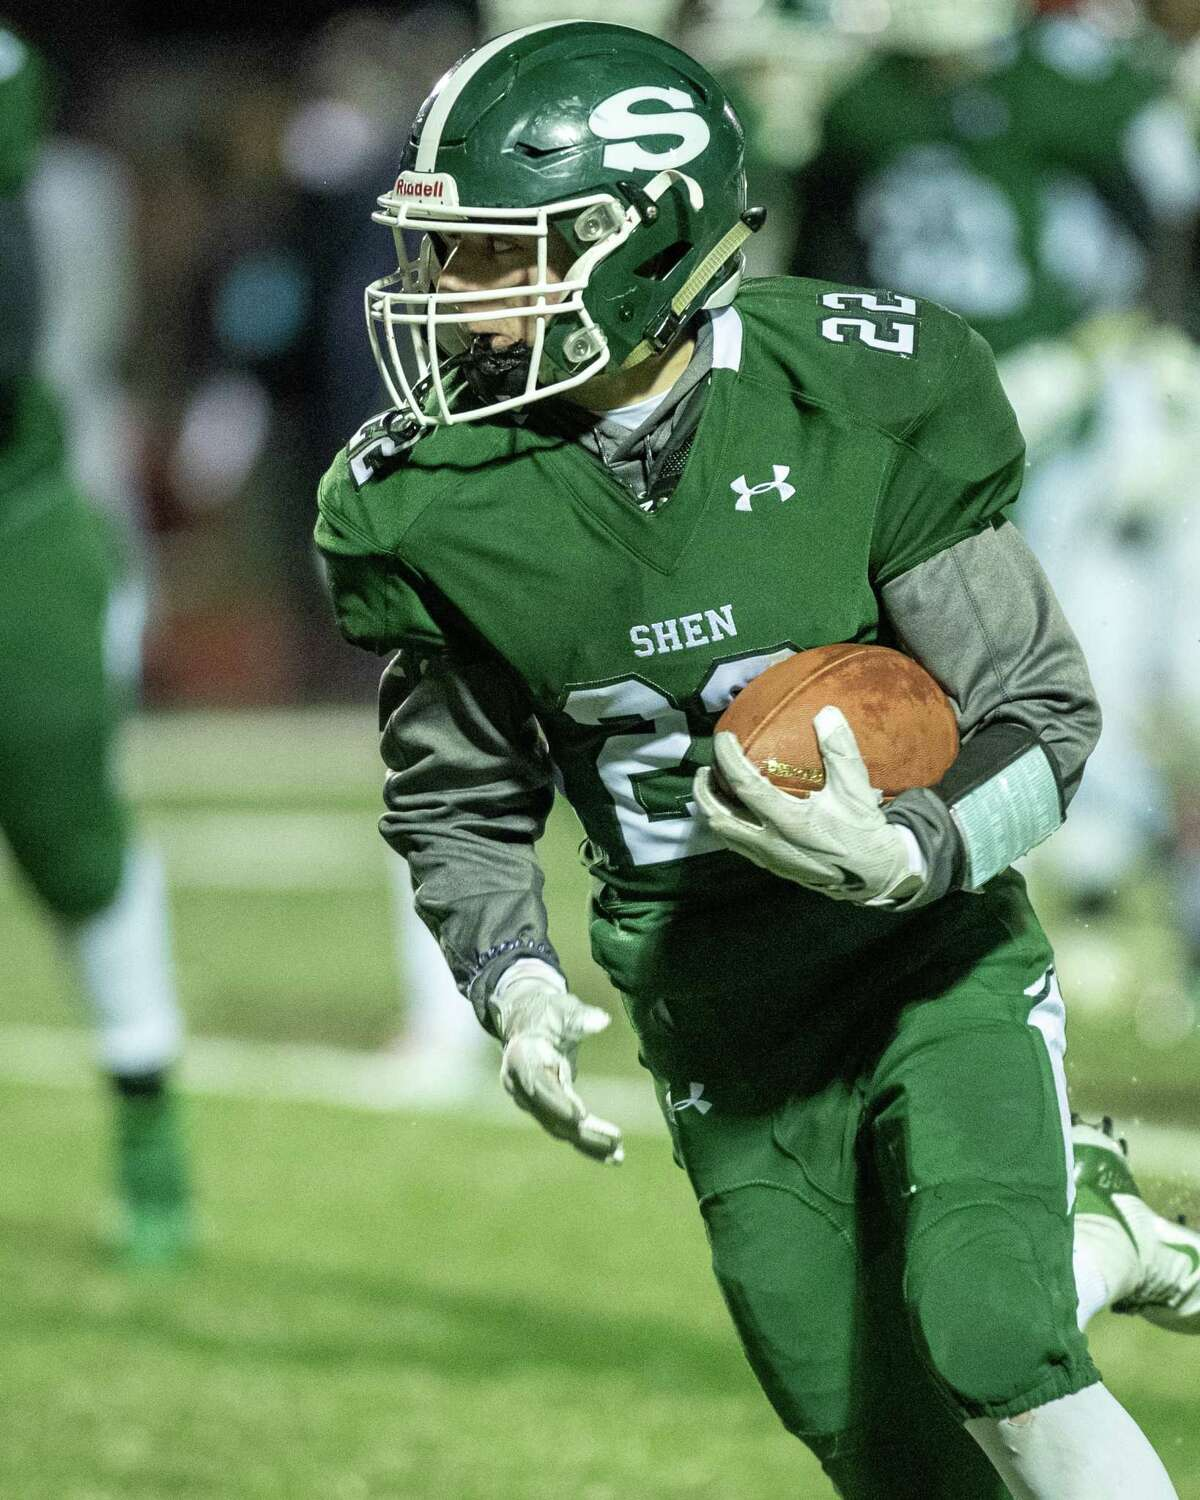 Shenendehowa running back Billy Beach during the Class AA New York state quarterfinals against Pine Bush at Shaker High School on Friday, Nov. 15, 2019 (Jim Franco/Special to the Times Union.)